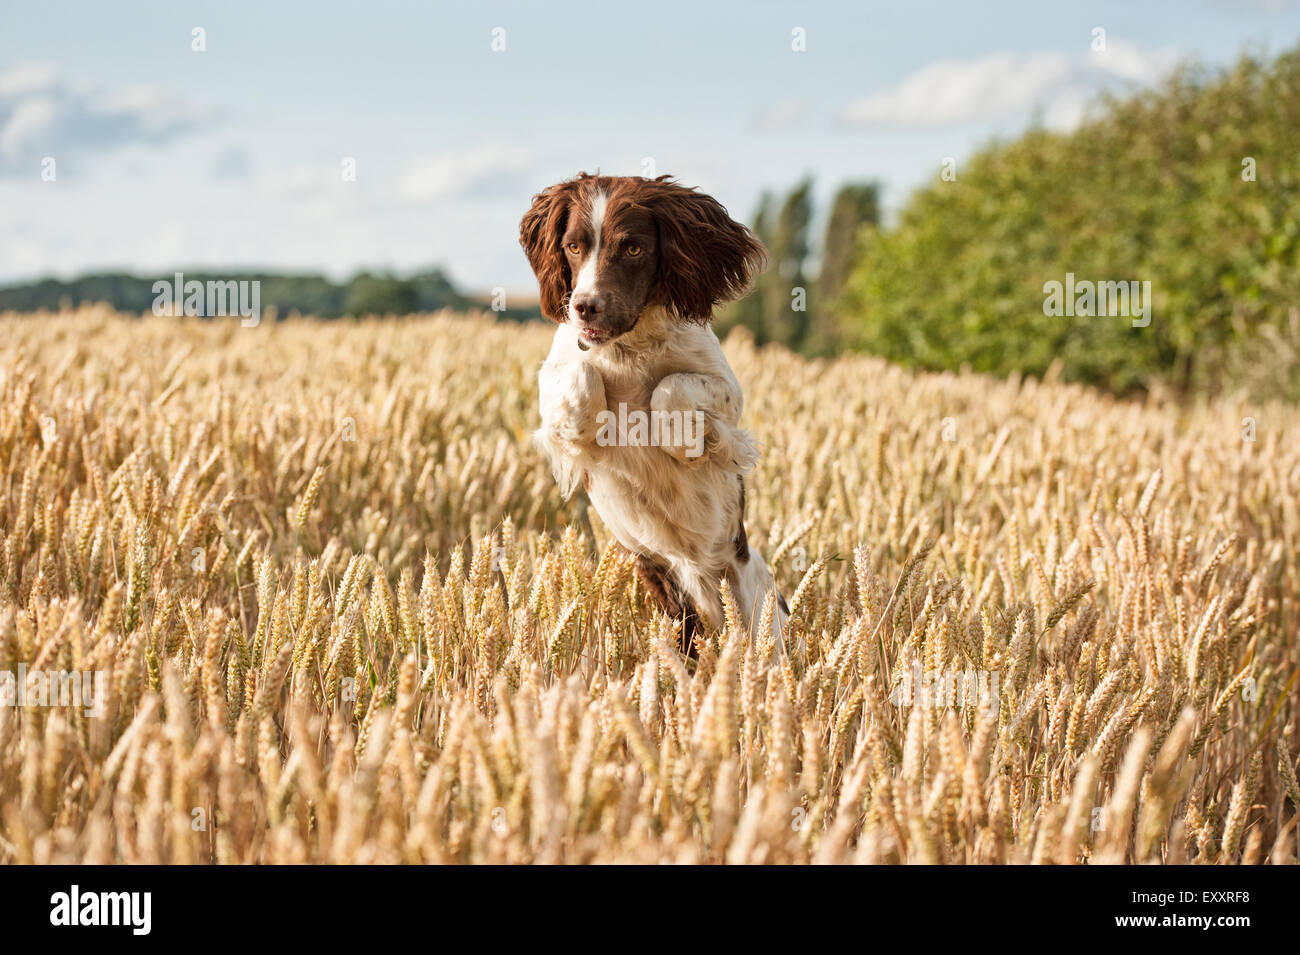 Springer Spaniel Dog in wheat field jumping and leaping having fun - Stock Image